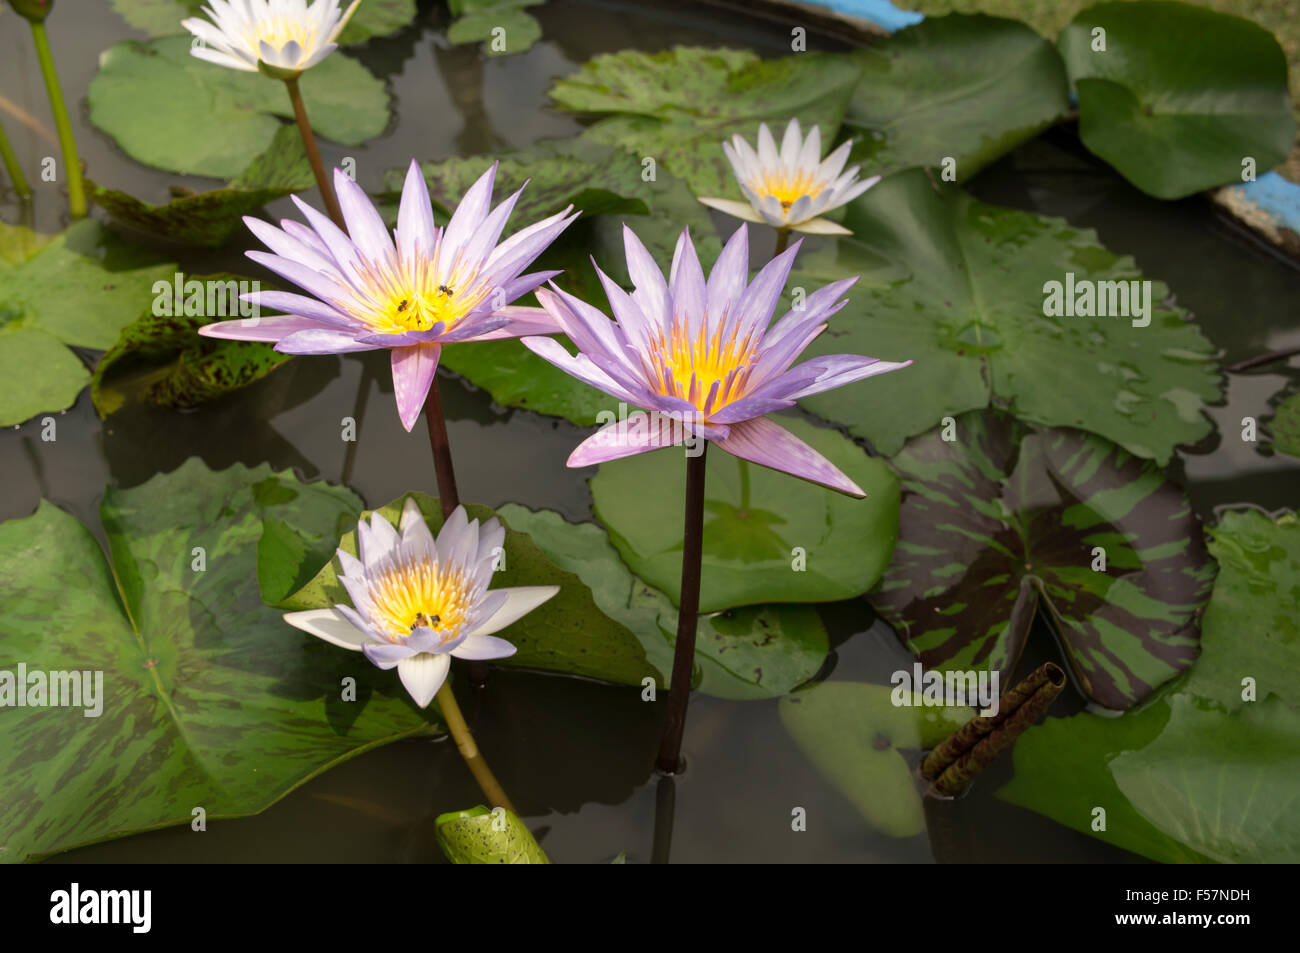 Lotus flowers water blossom gardens pond water lily decoration lotus flowers water blossom gardens pond water lily decoration herbal medicine nobody single flower green mightylinksfo